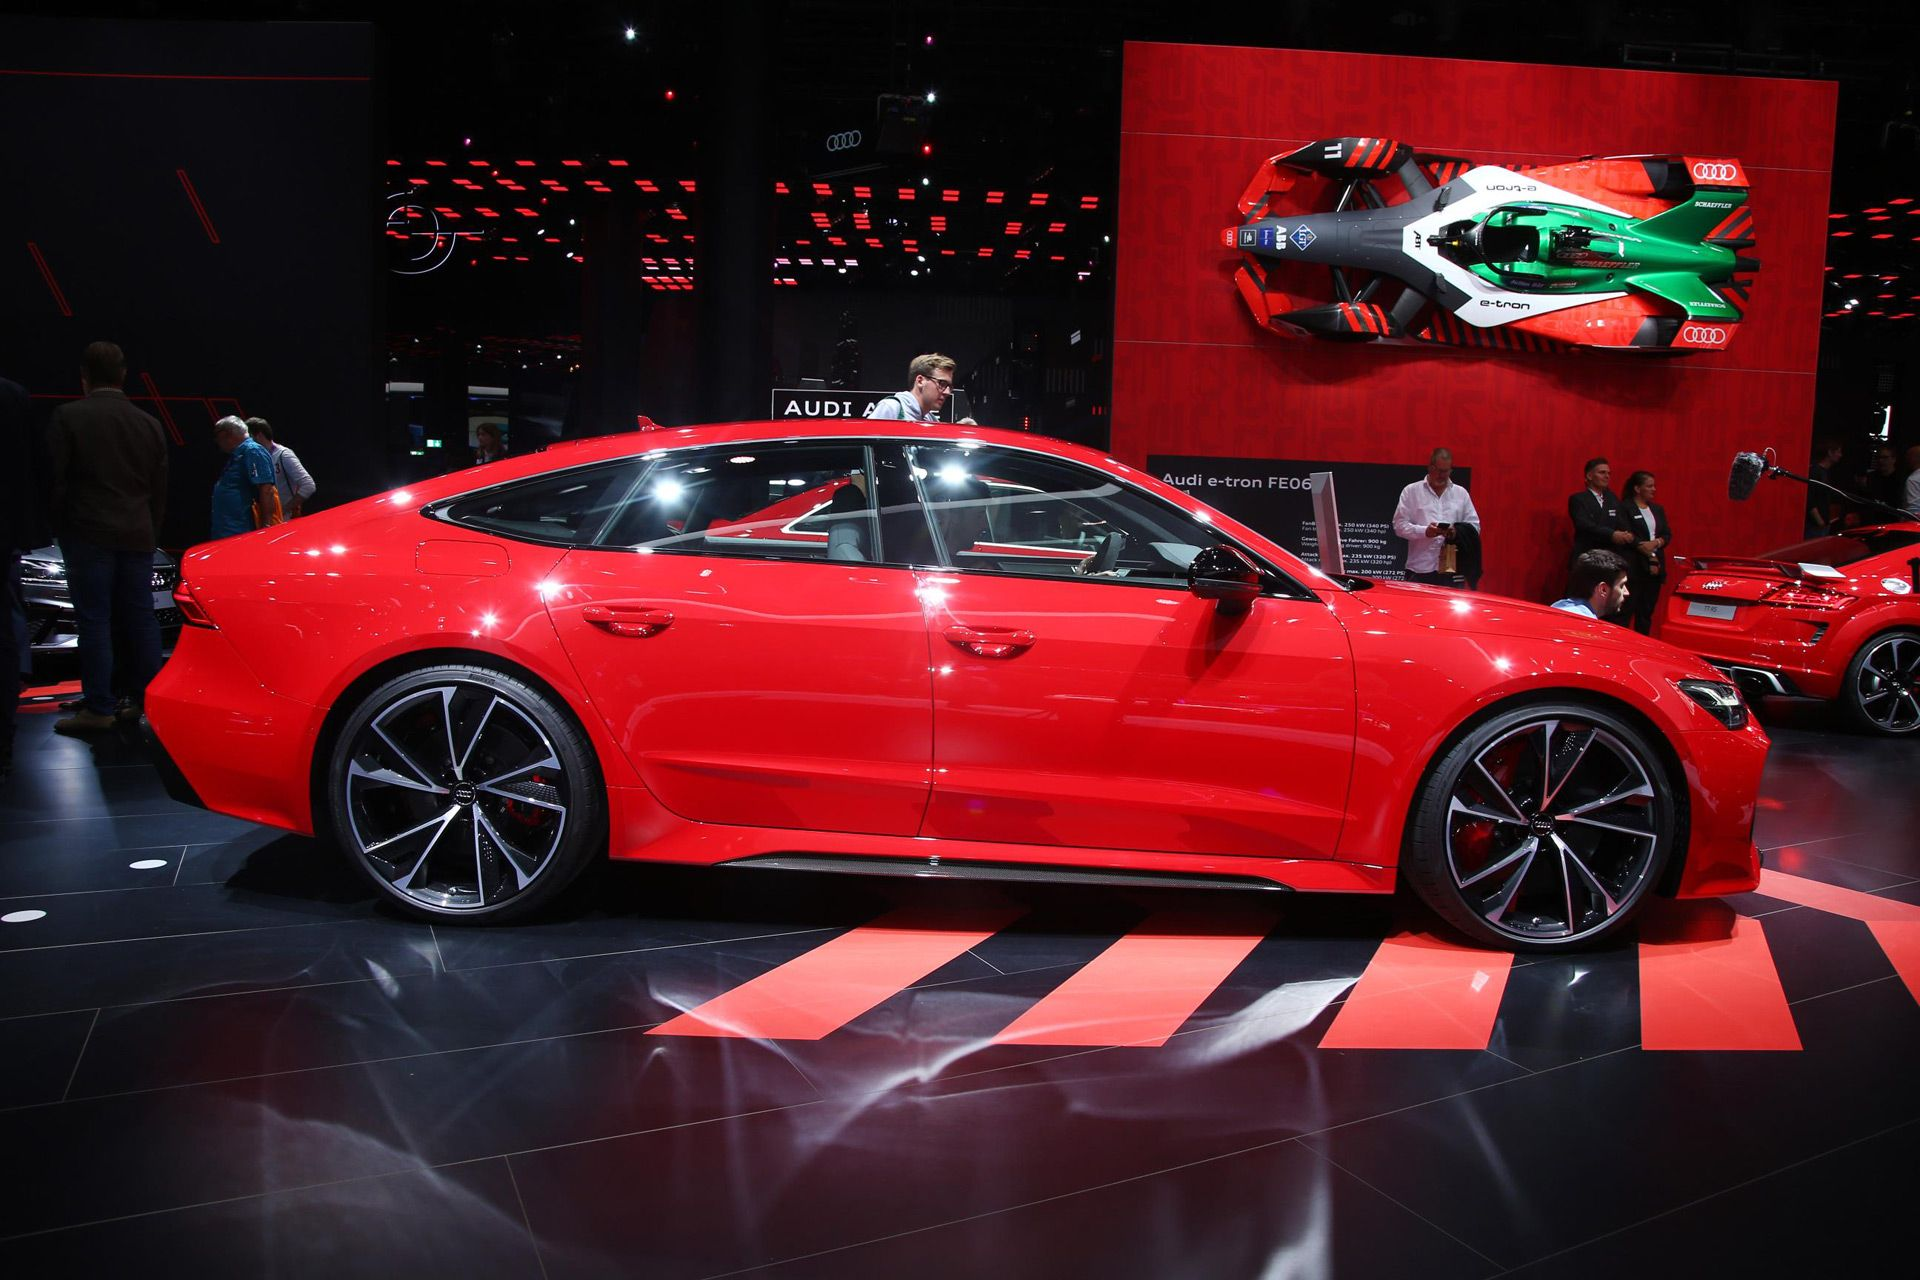 The 114,995 2021 Audi RS 7 will take you to 190 mph in